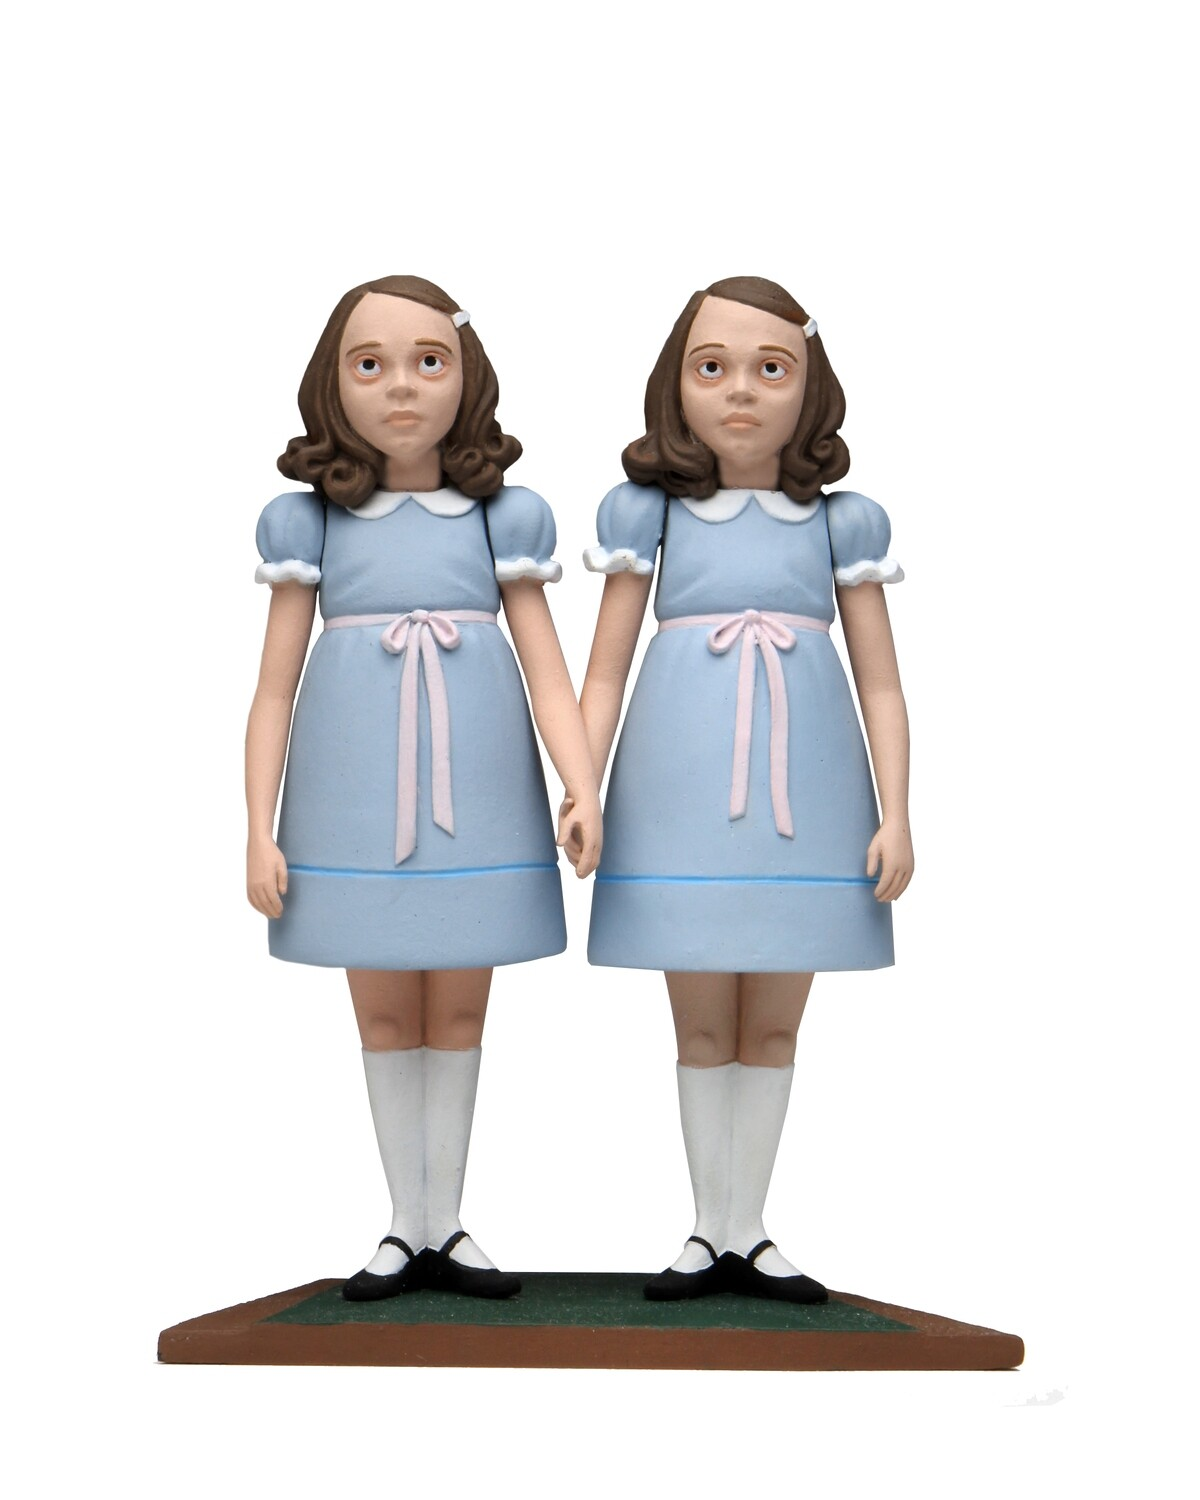 """PRE-ORDER Neca The Shining - 6"""" Scale Action Figure - Toony Terrors The Grady Twins"""